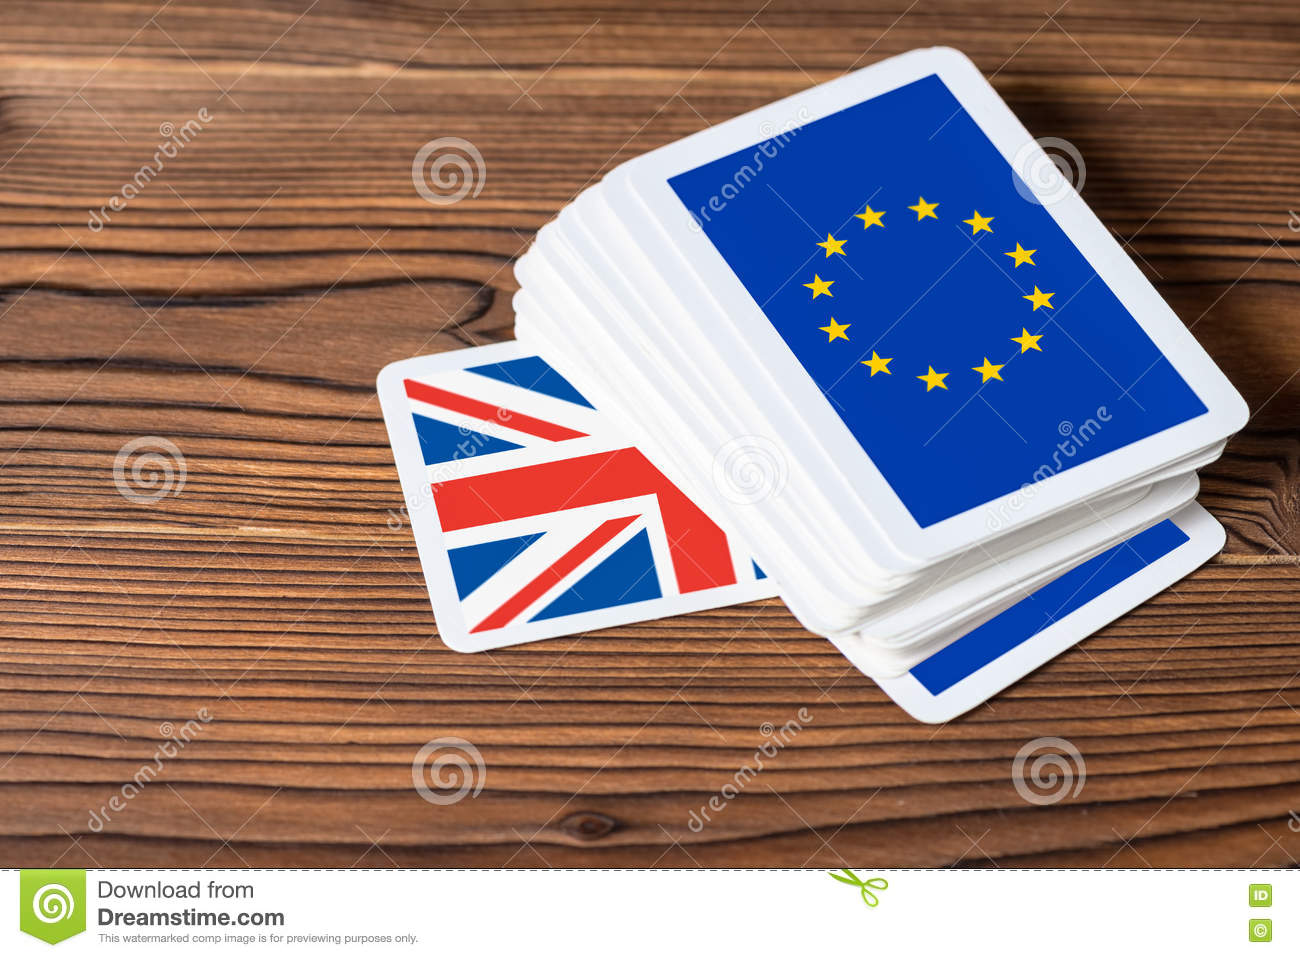 Collage on event Brexit UK EU referendum concept of card game sh